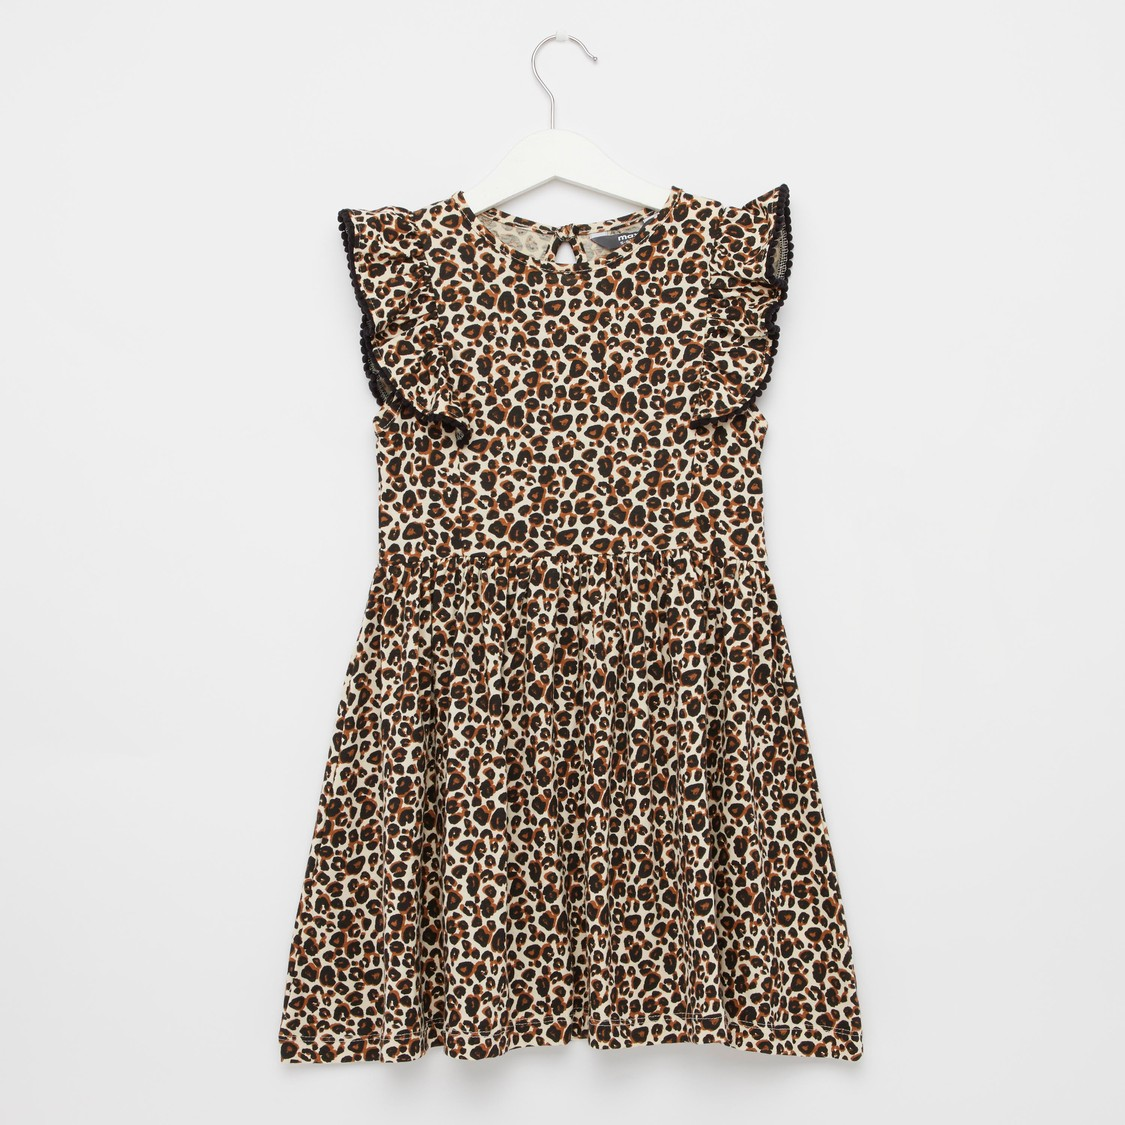 All-Over Animal Print Dress with Round Neck and Cap Sleeves